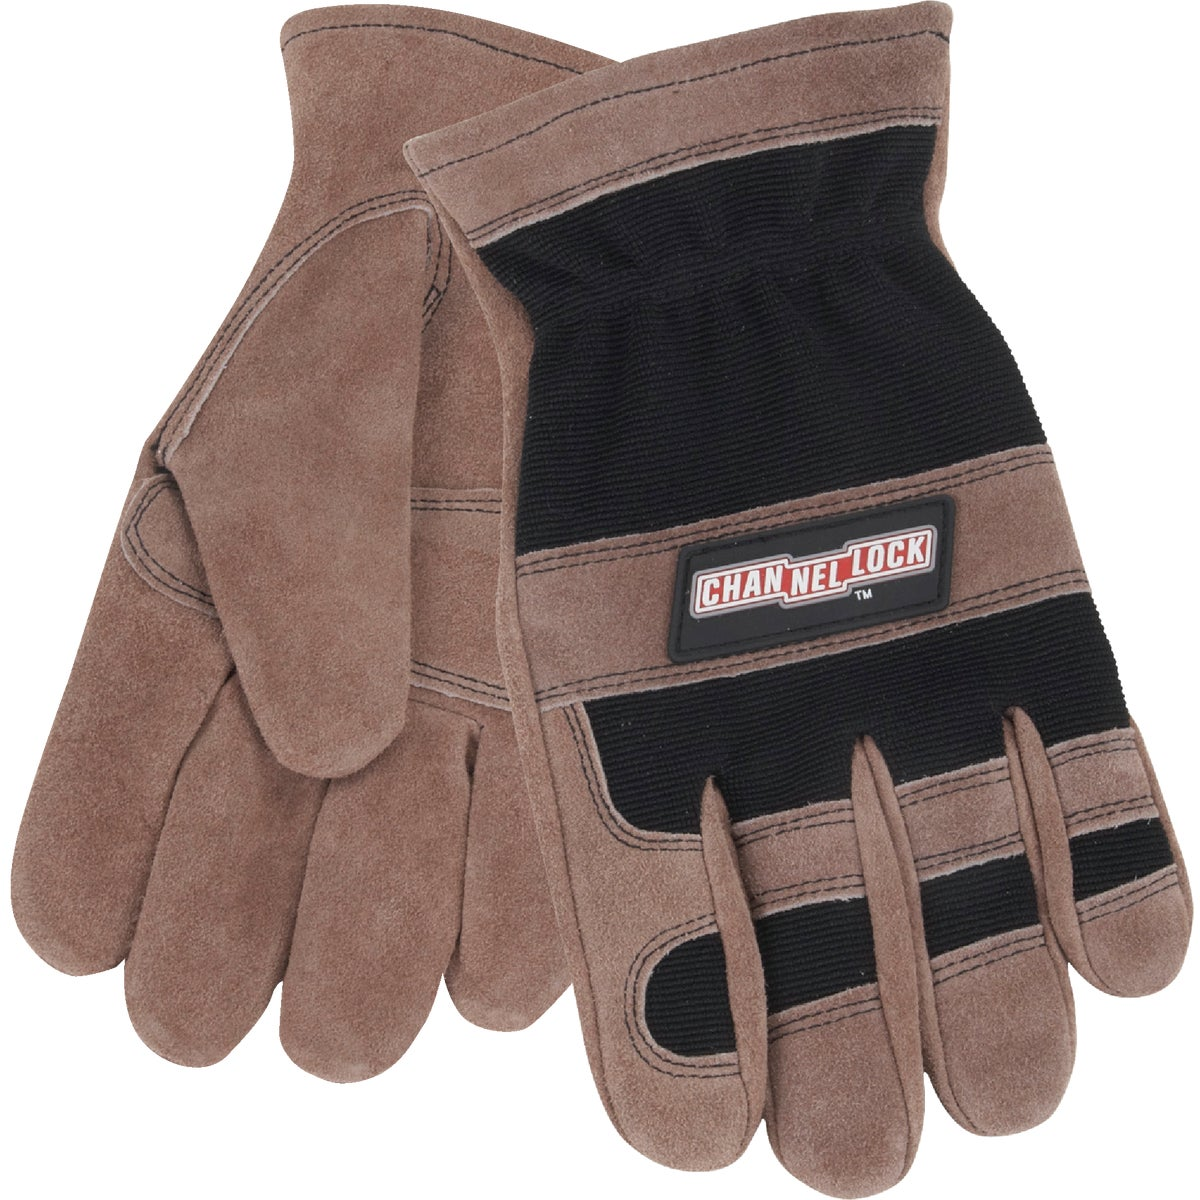 LRG SPLIT LEATHER GLOVE - 706517 by Channellock®